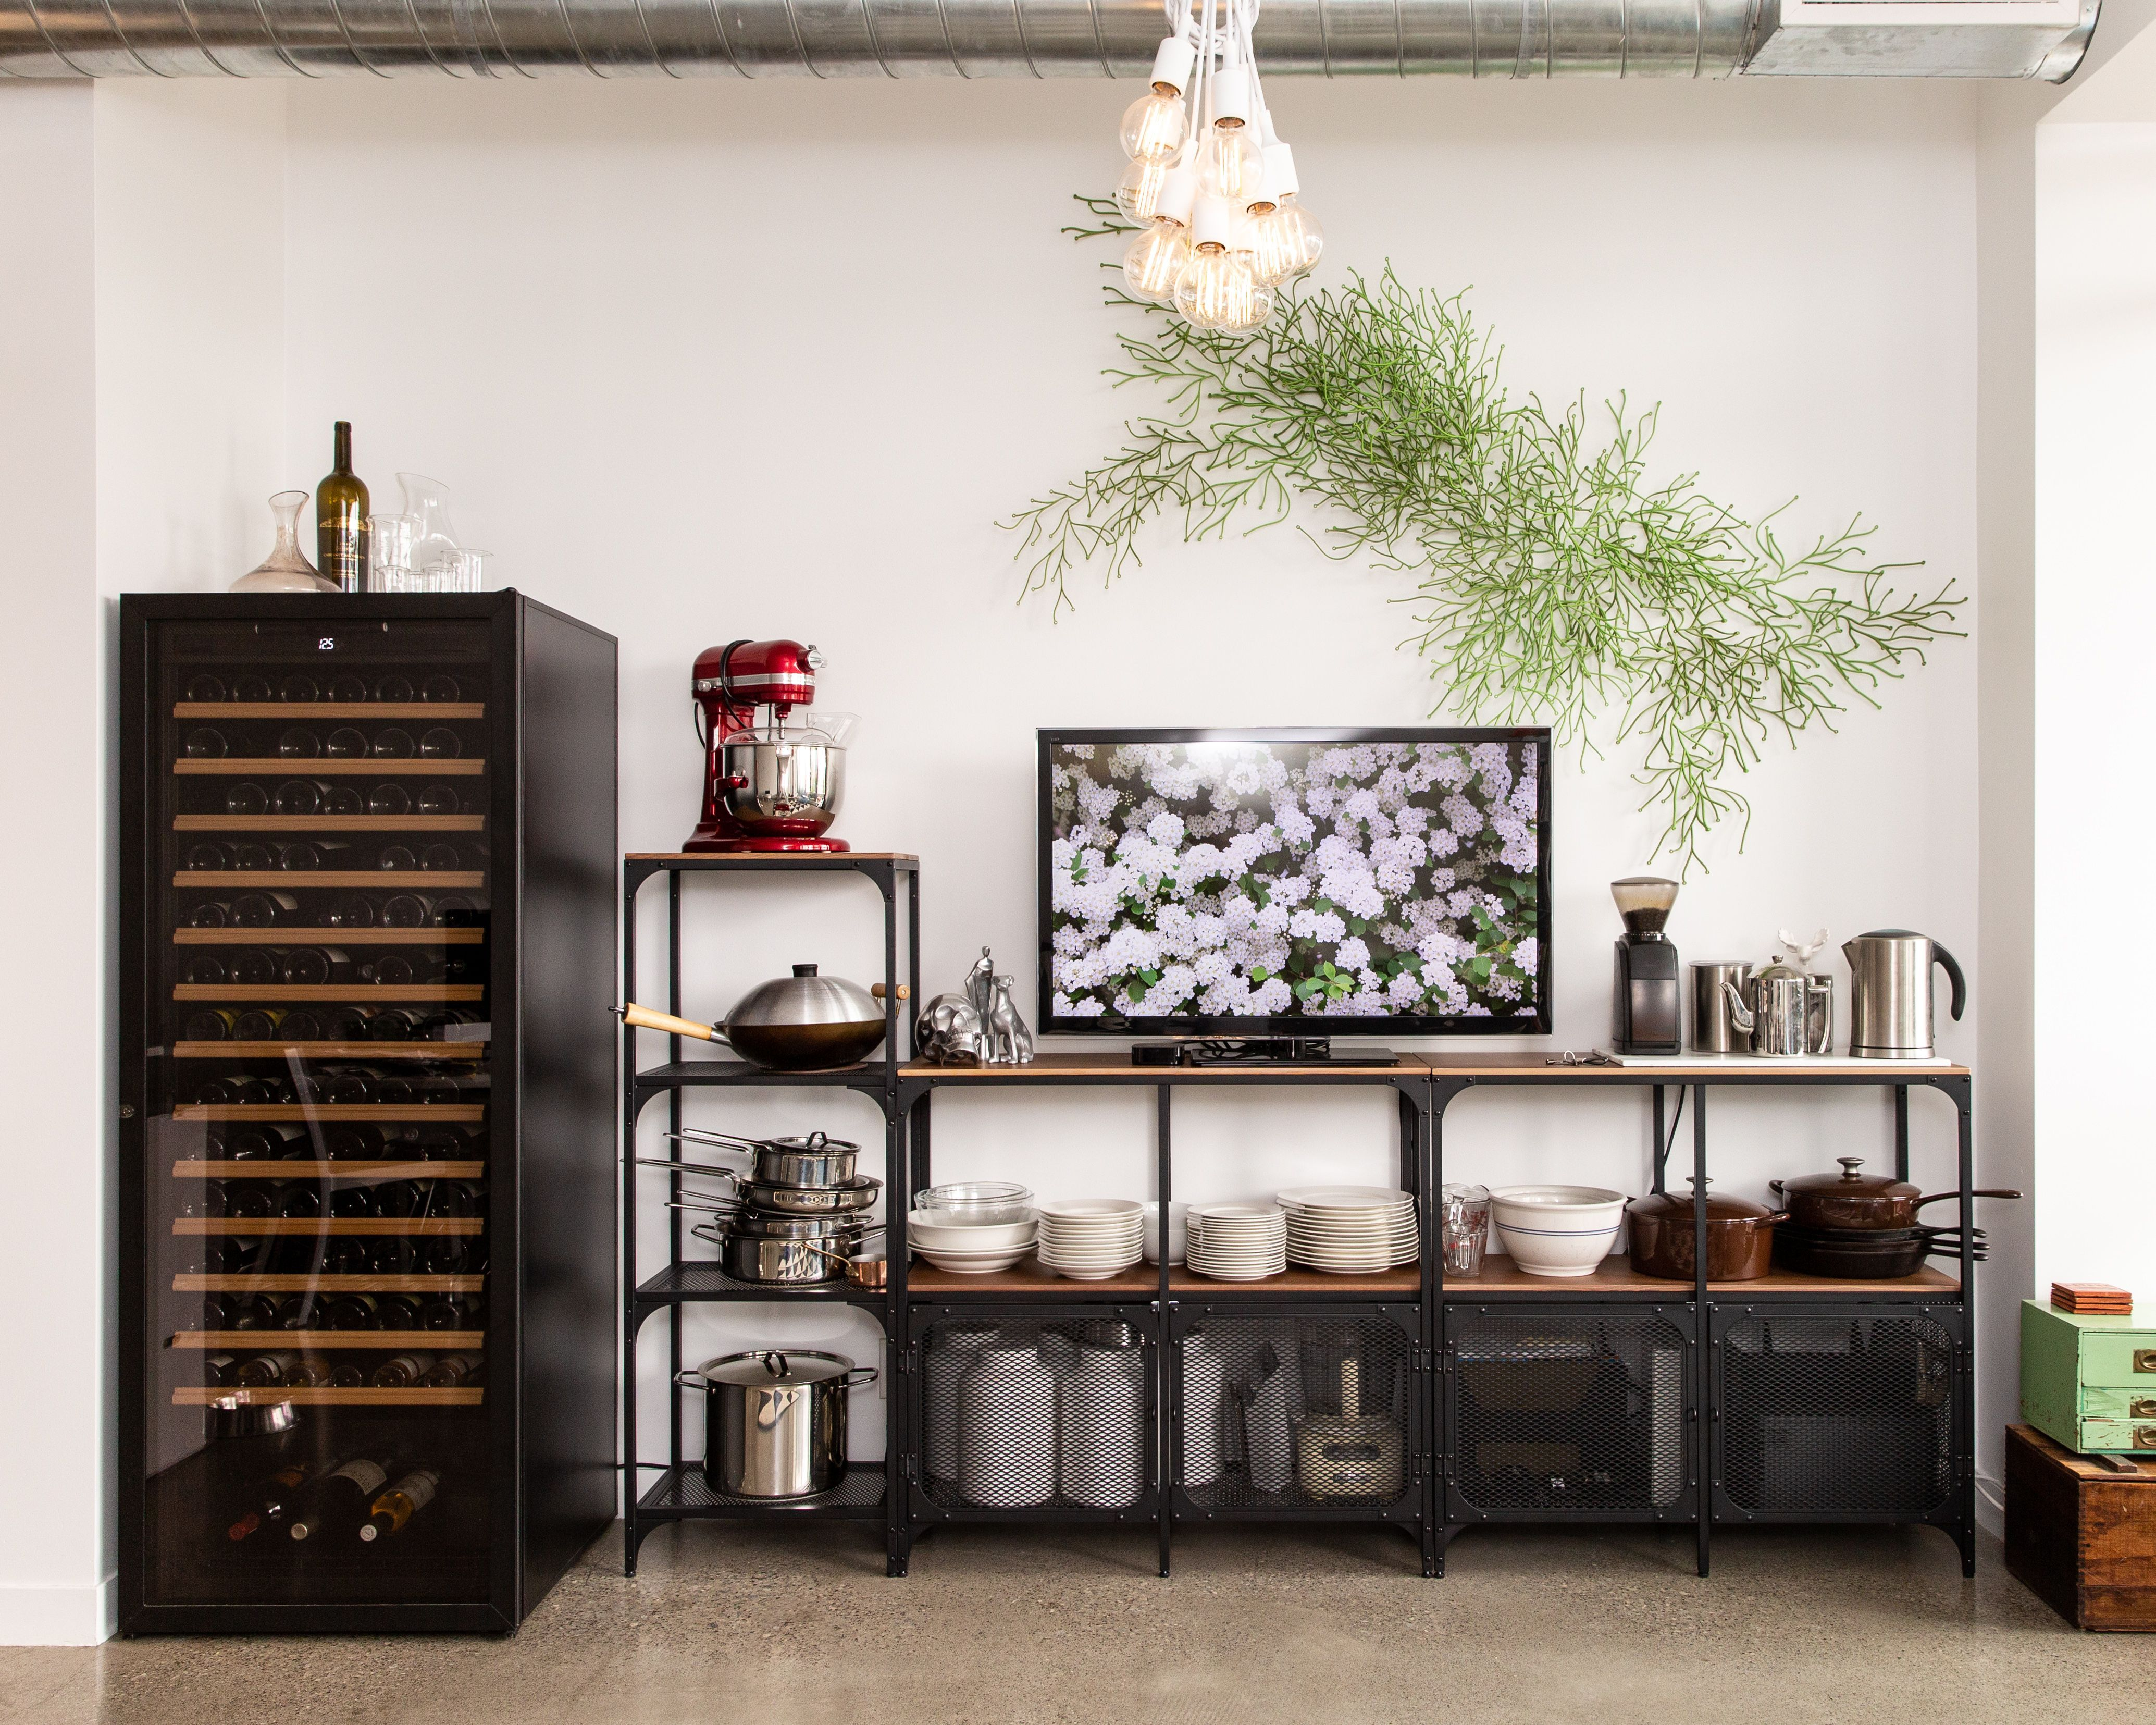 Our Boho Chic Toronto Loft Living Room With Polished Concrete Floors Shelving Units Ikea Fjallbo Wine Cel Ikea Living Room Living Room Loft Ikea Dining Room [ 3310 x 4138 Pixel ]